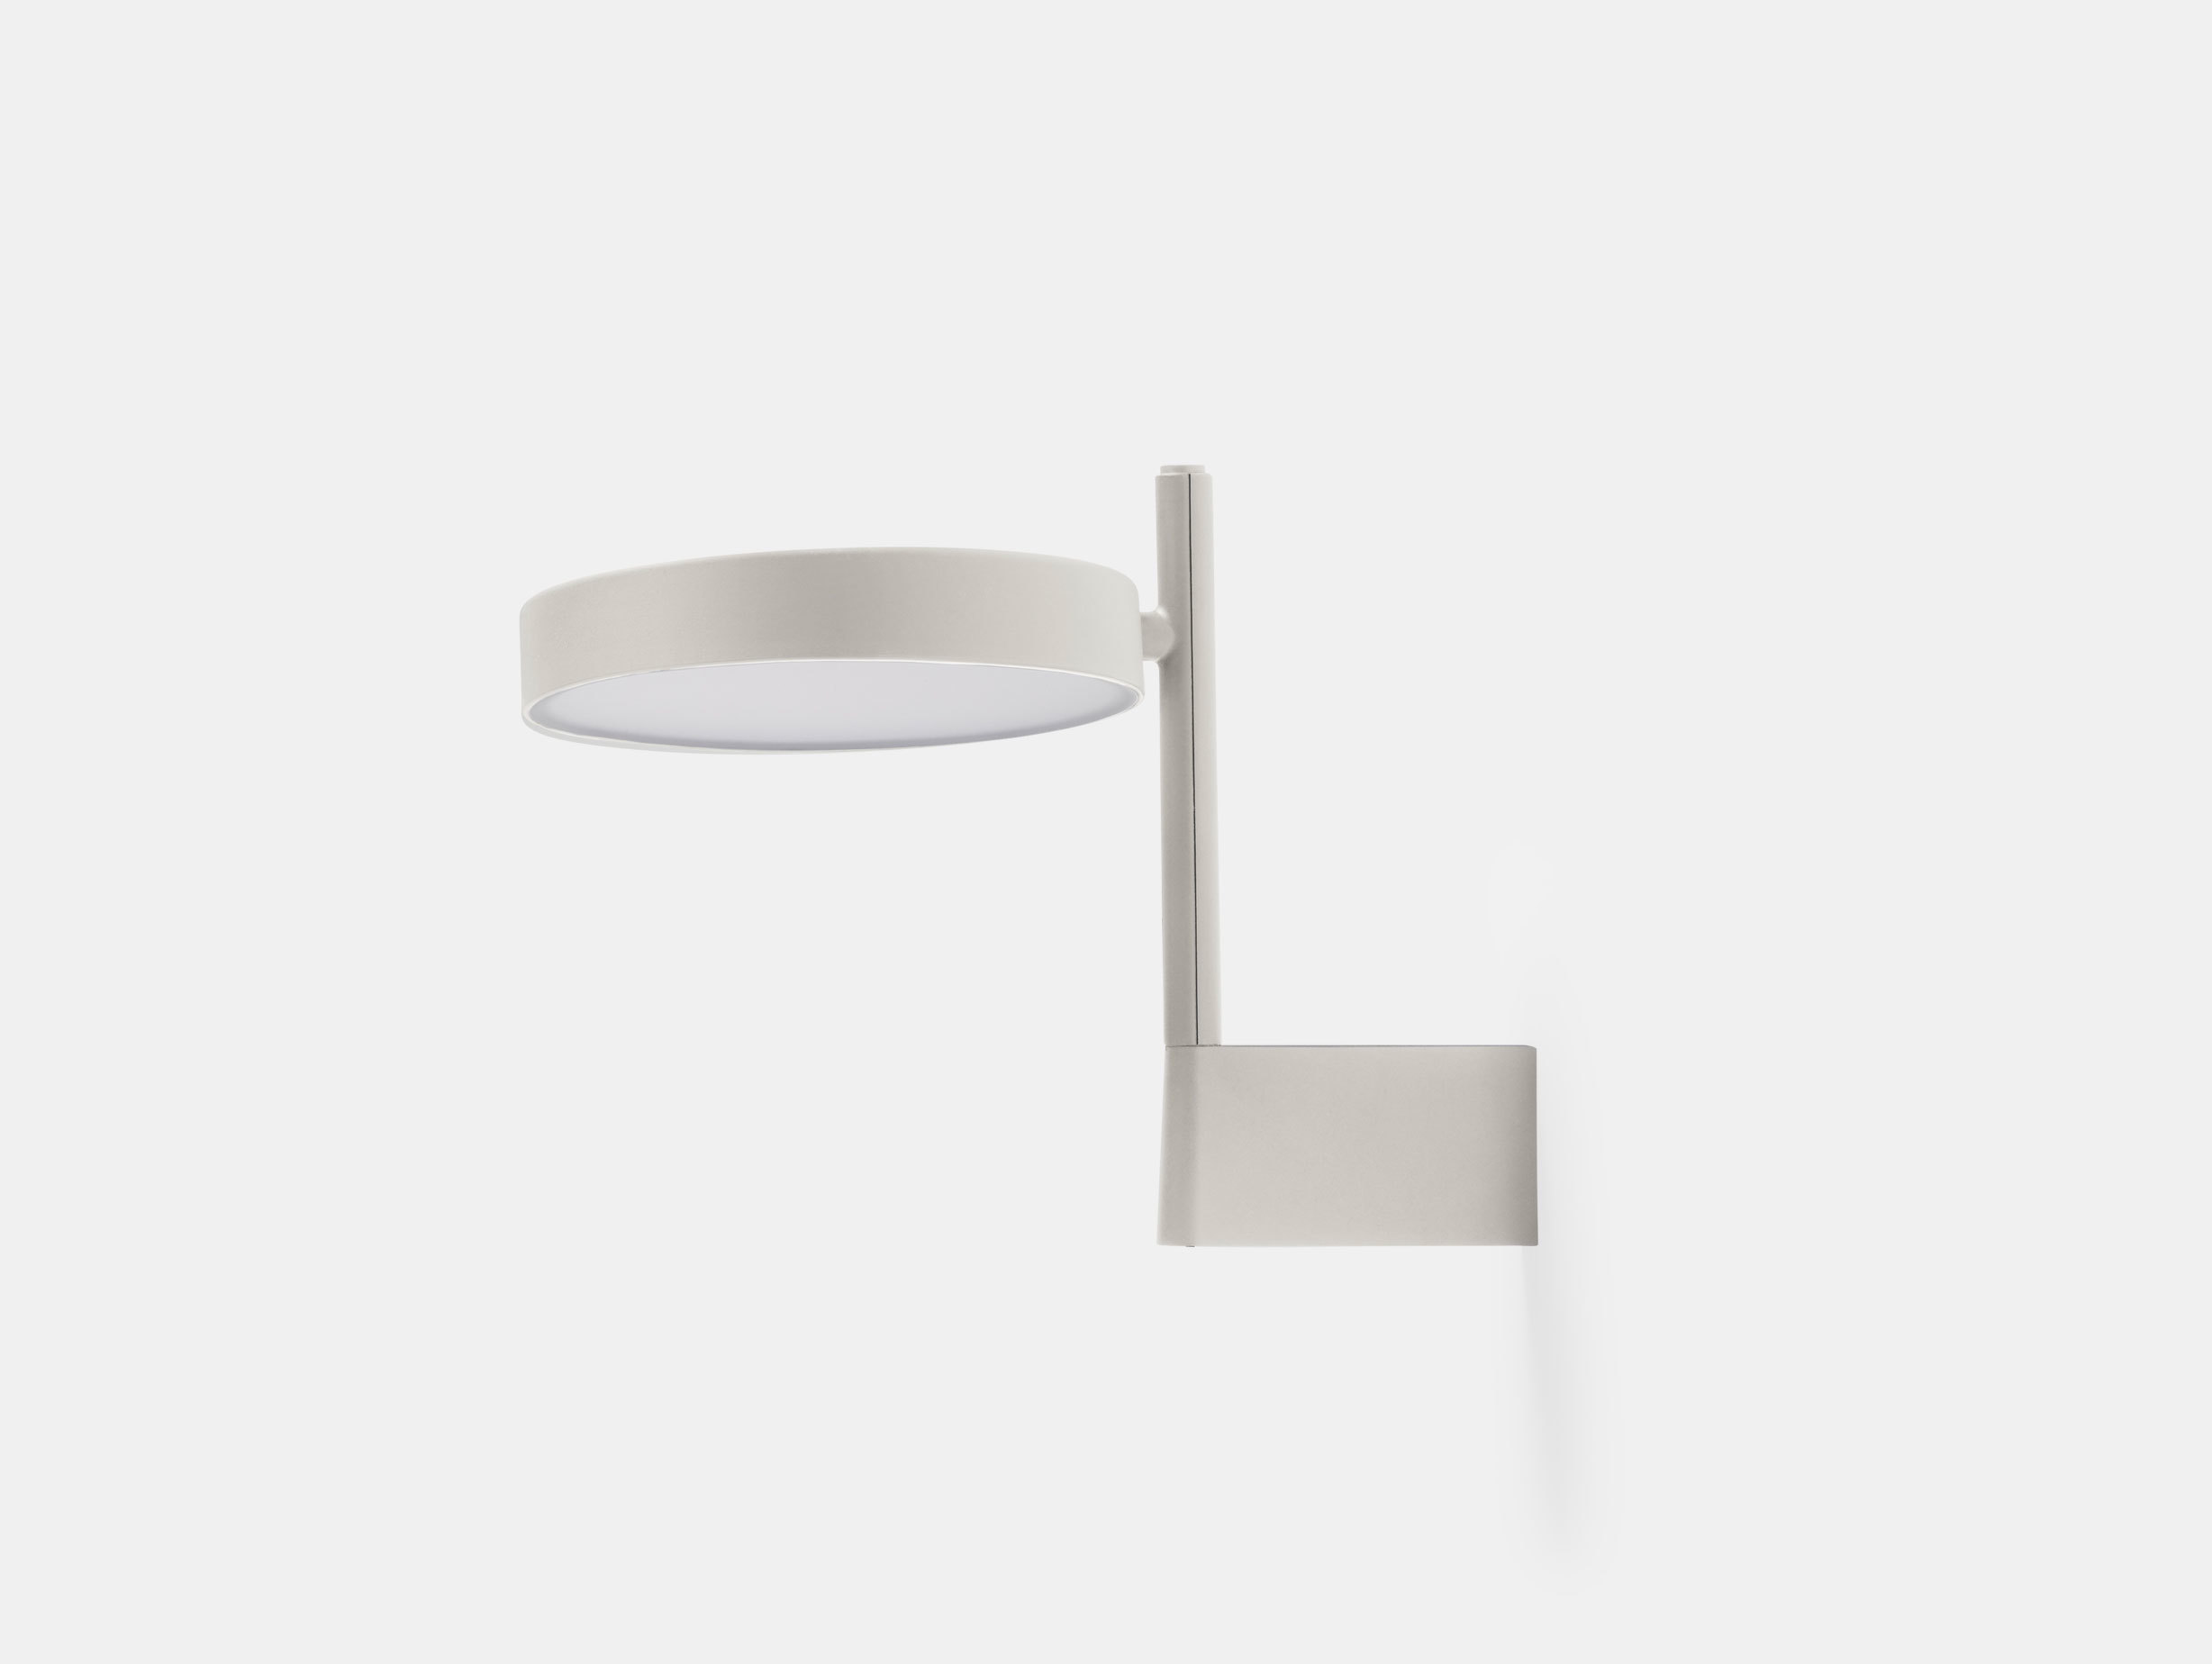 W182 Pastille Wall Lamp image 5